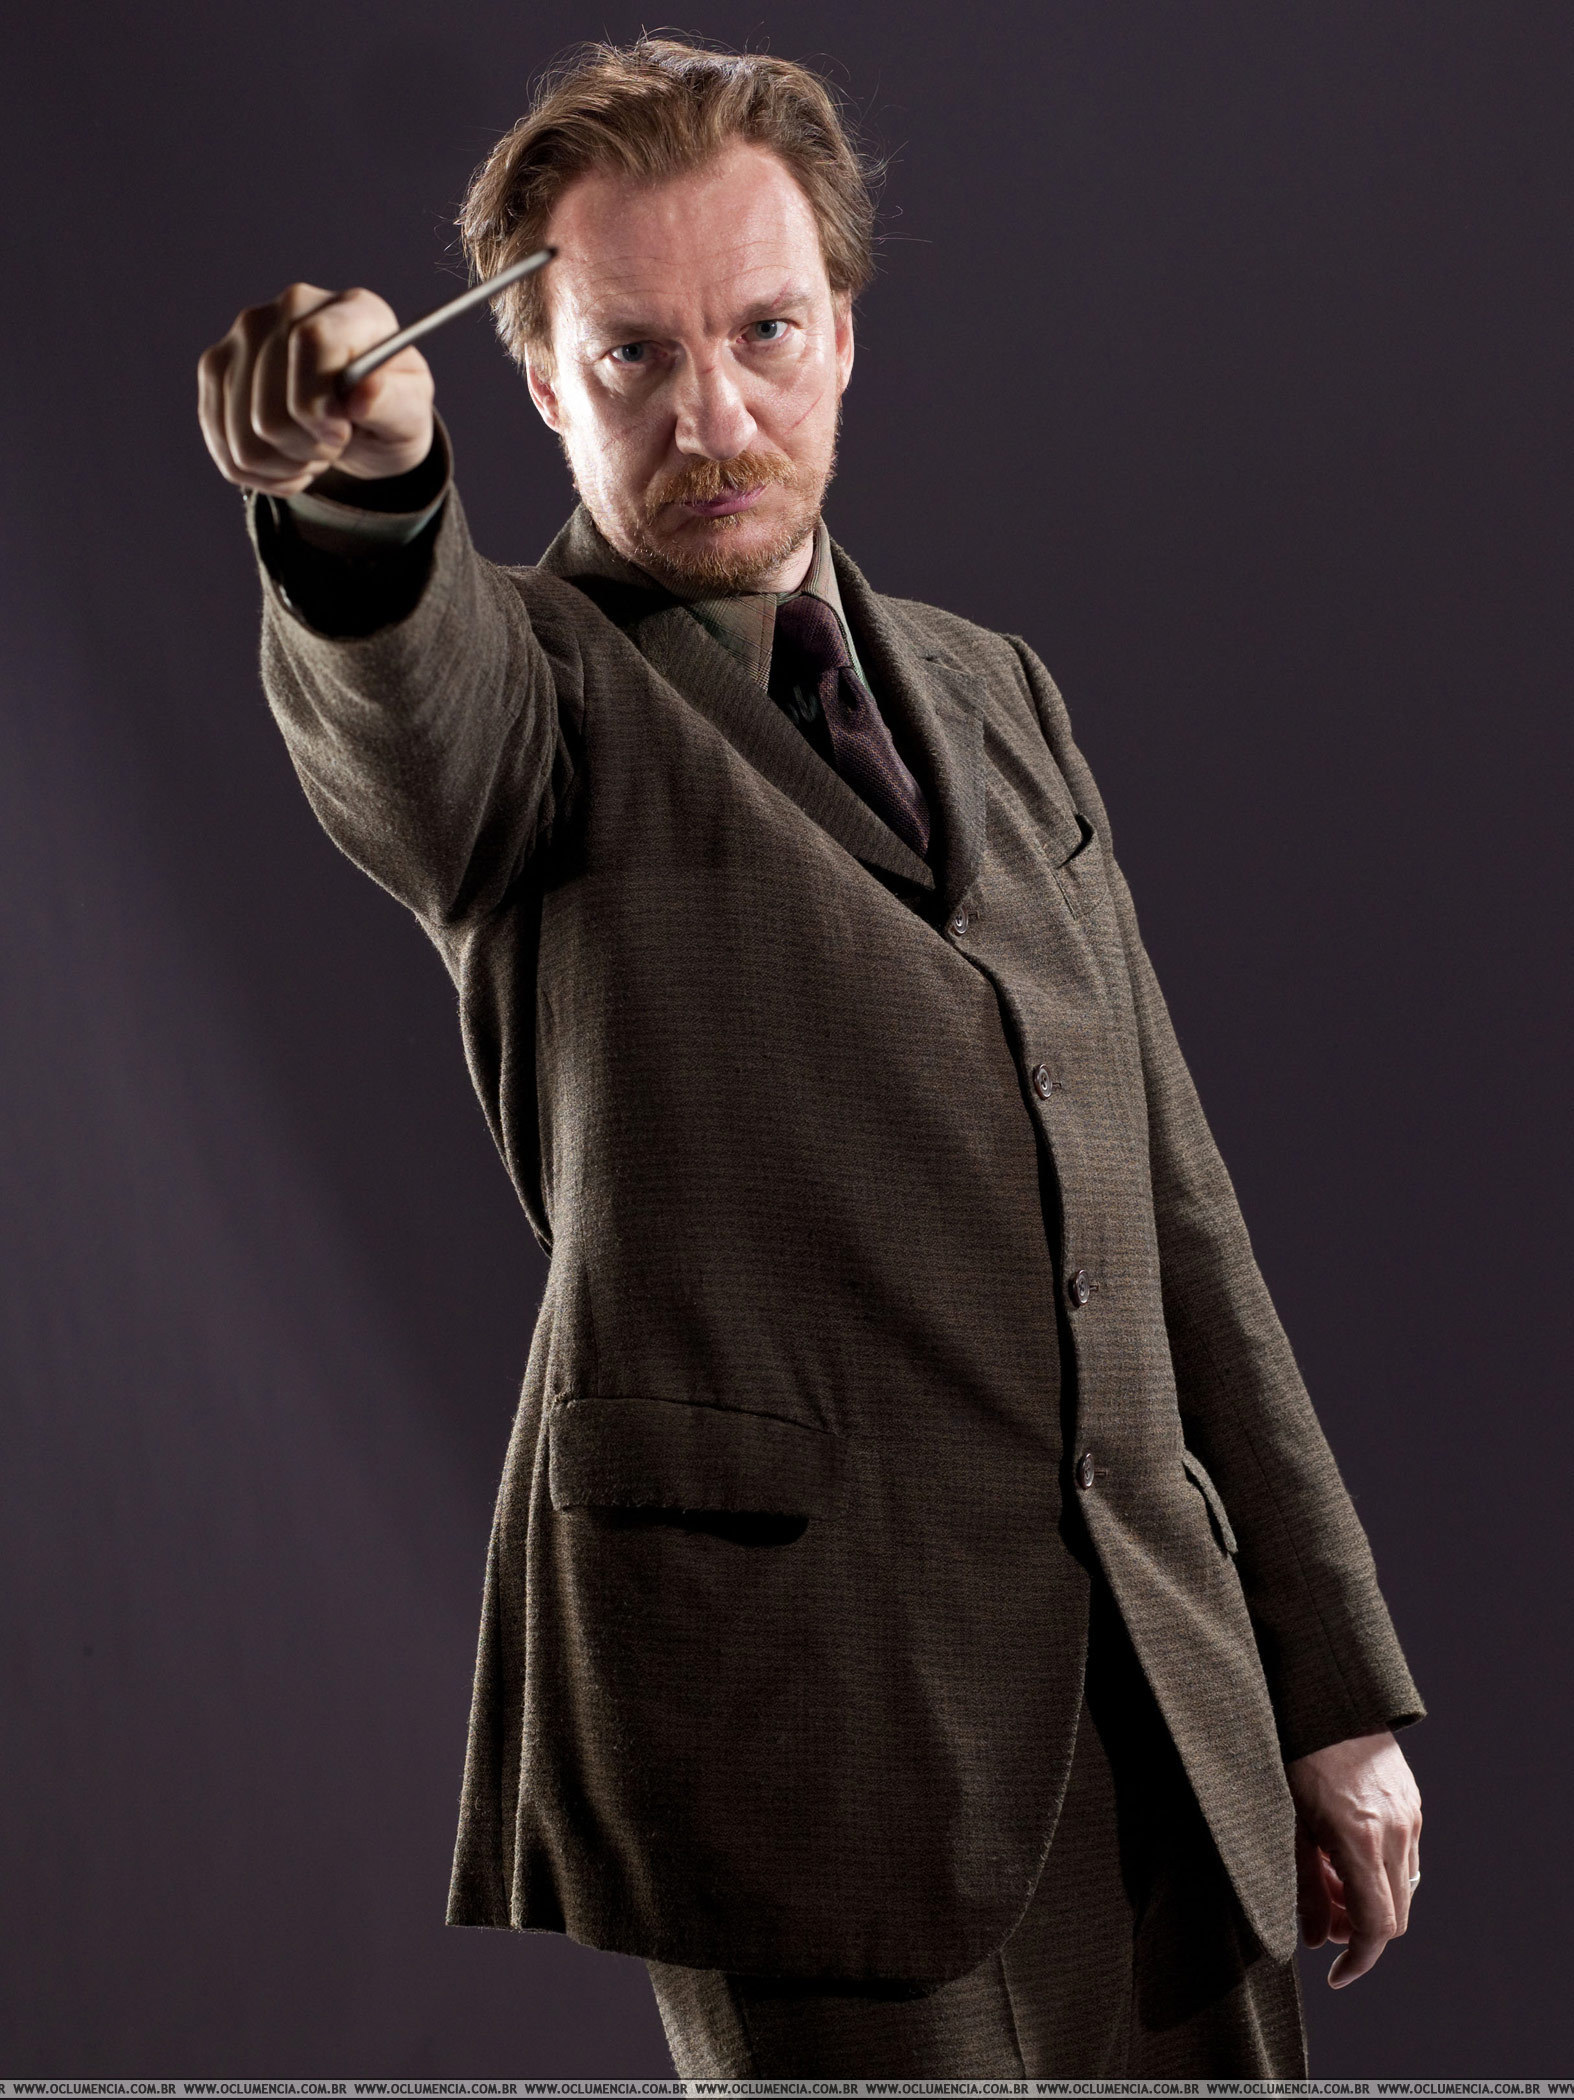 Dh Promo Pics Remus Lupin Photo 18895552 Fanpop